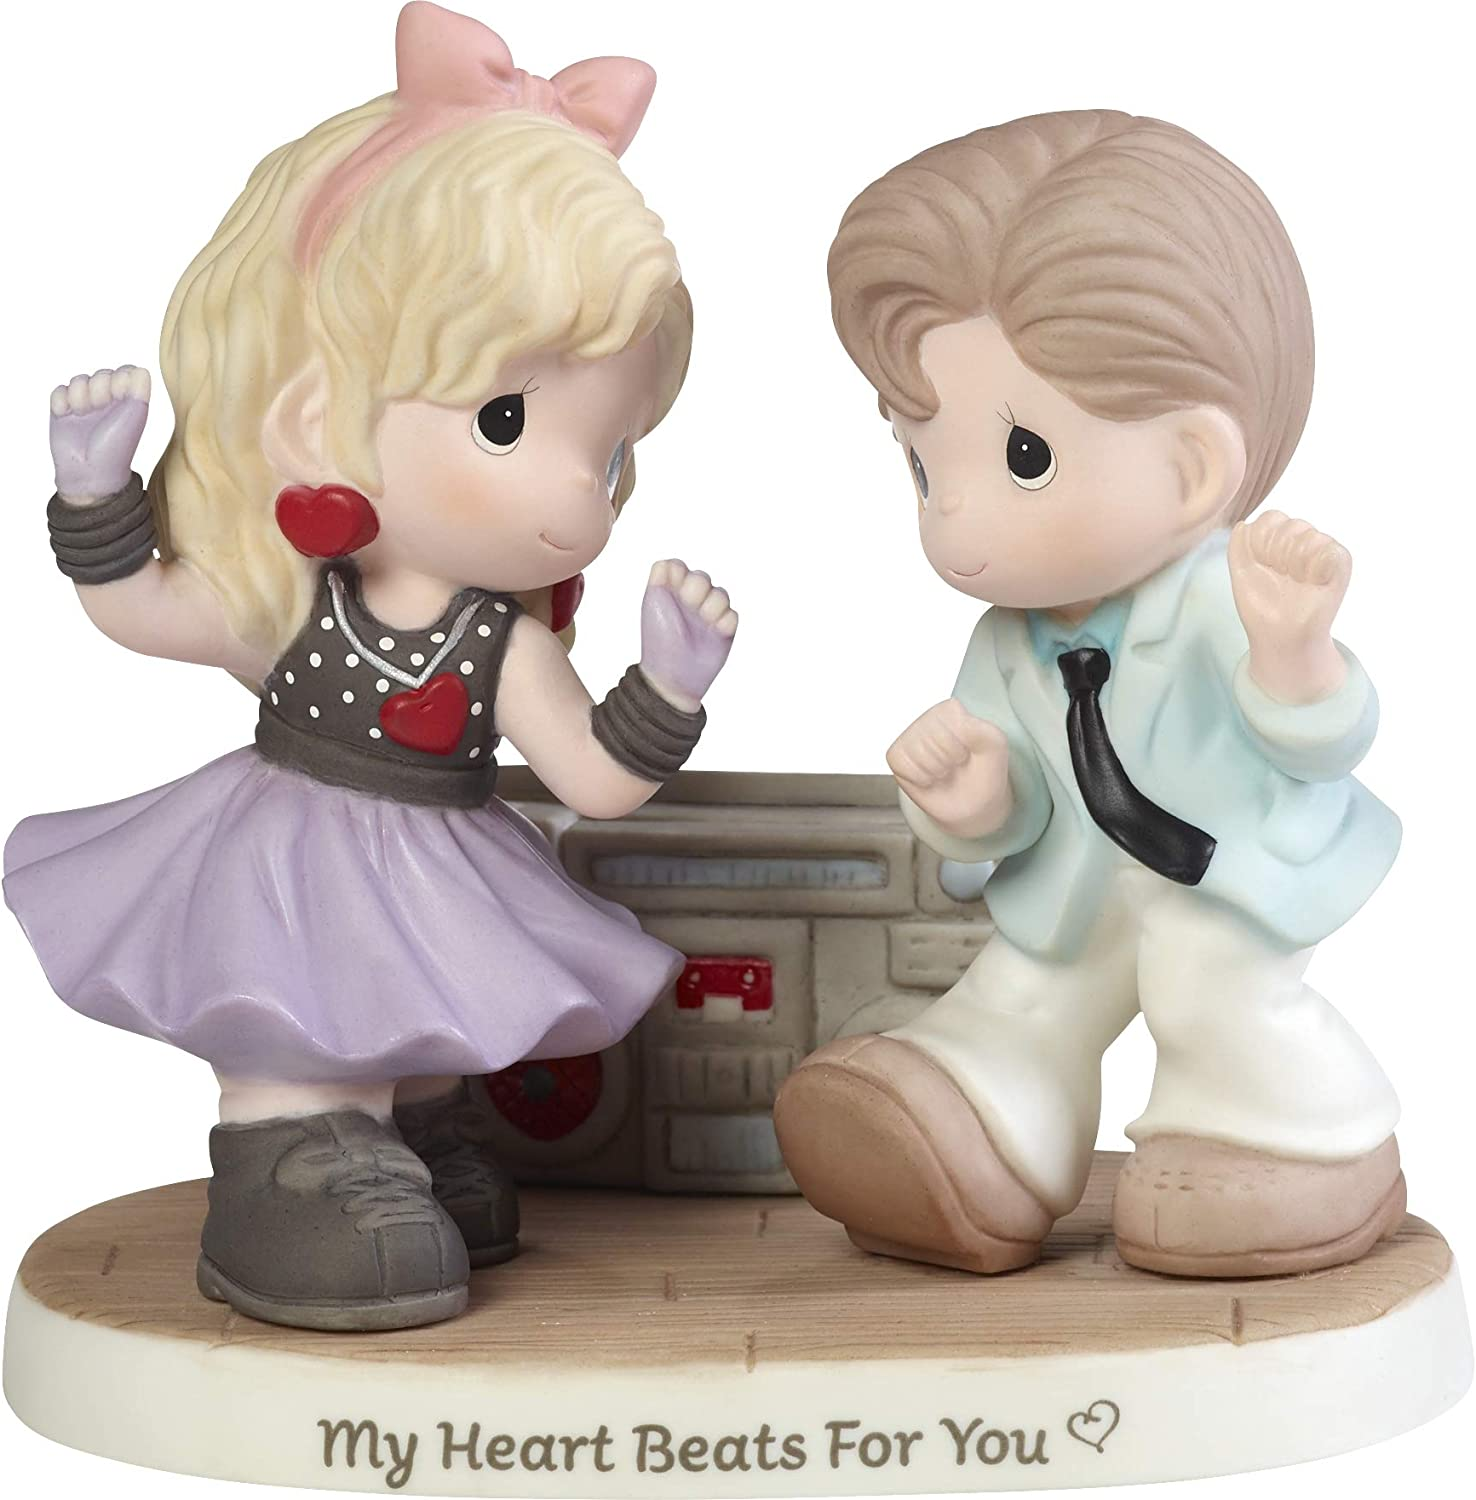 Precious Moments カップル Listening to Music 192011 My Heart Beats for Youビスク磁器フィギュア マルチ